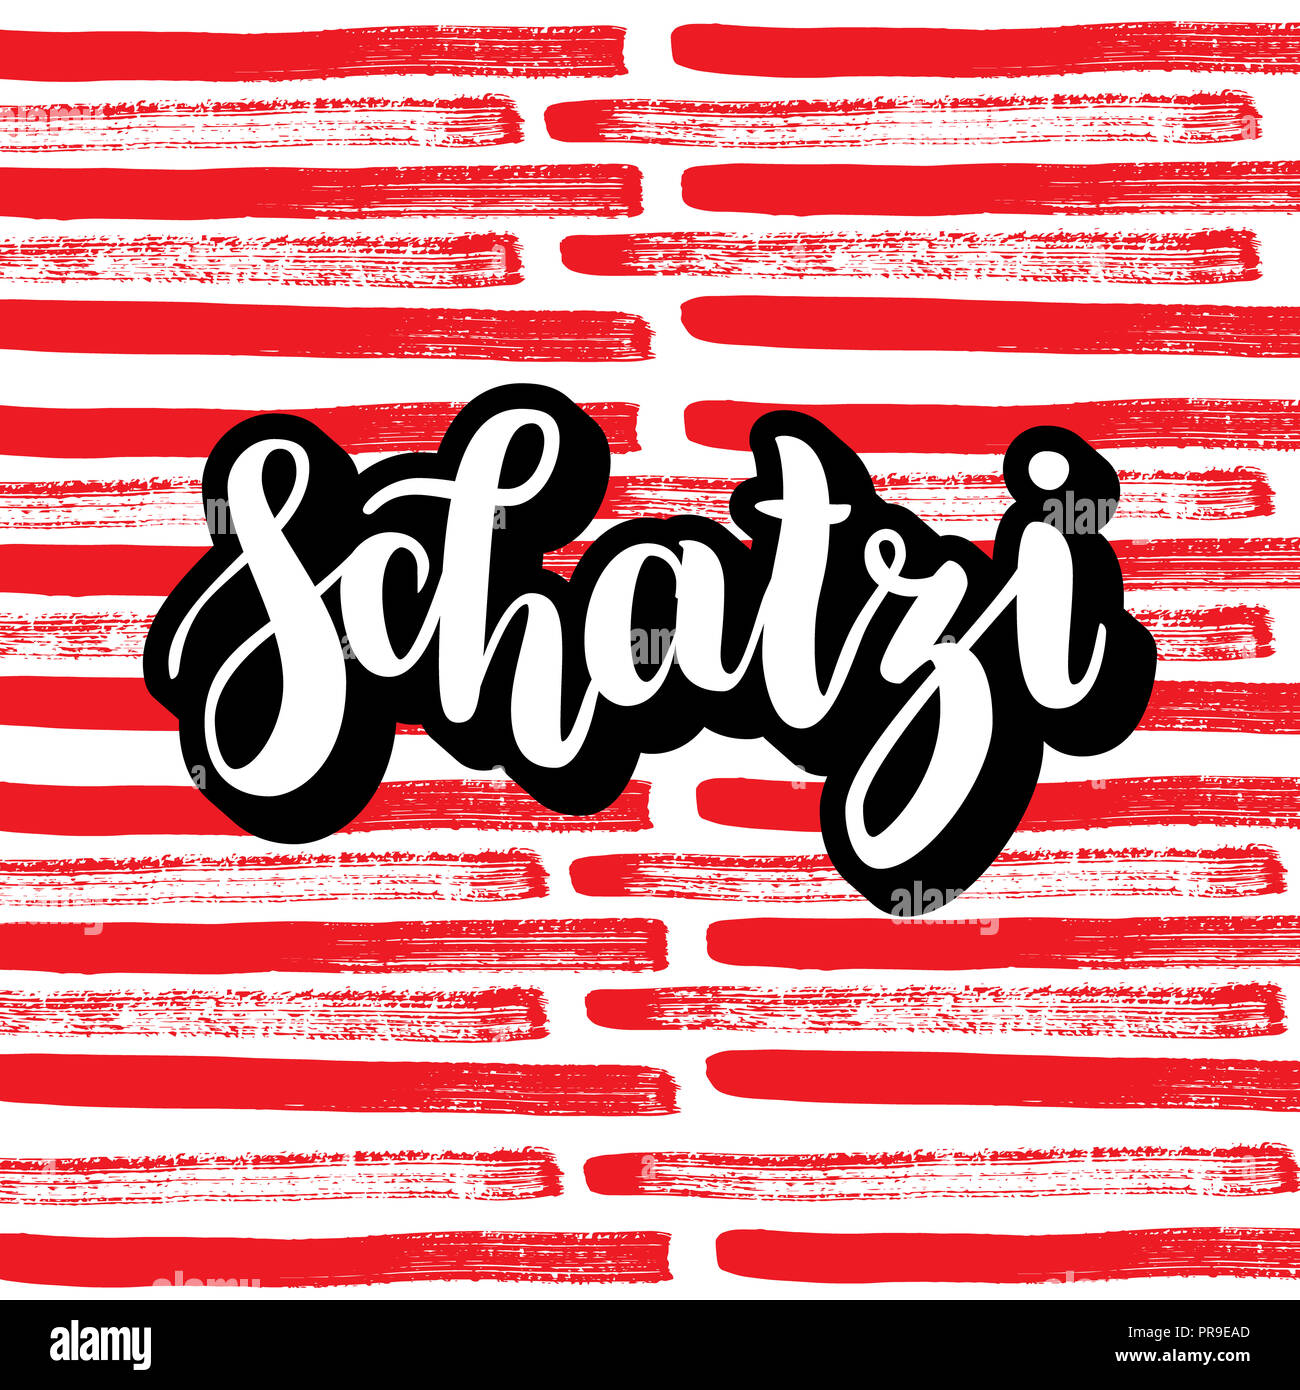 schatzi - sweetheart in German. Happy Valentines day card, Hand-written lettering on colorful abstract background.  illustration. - Stock Image